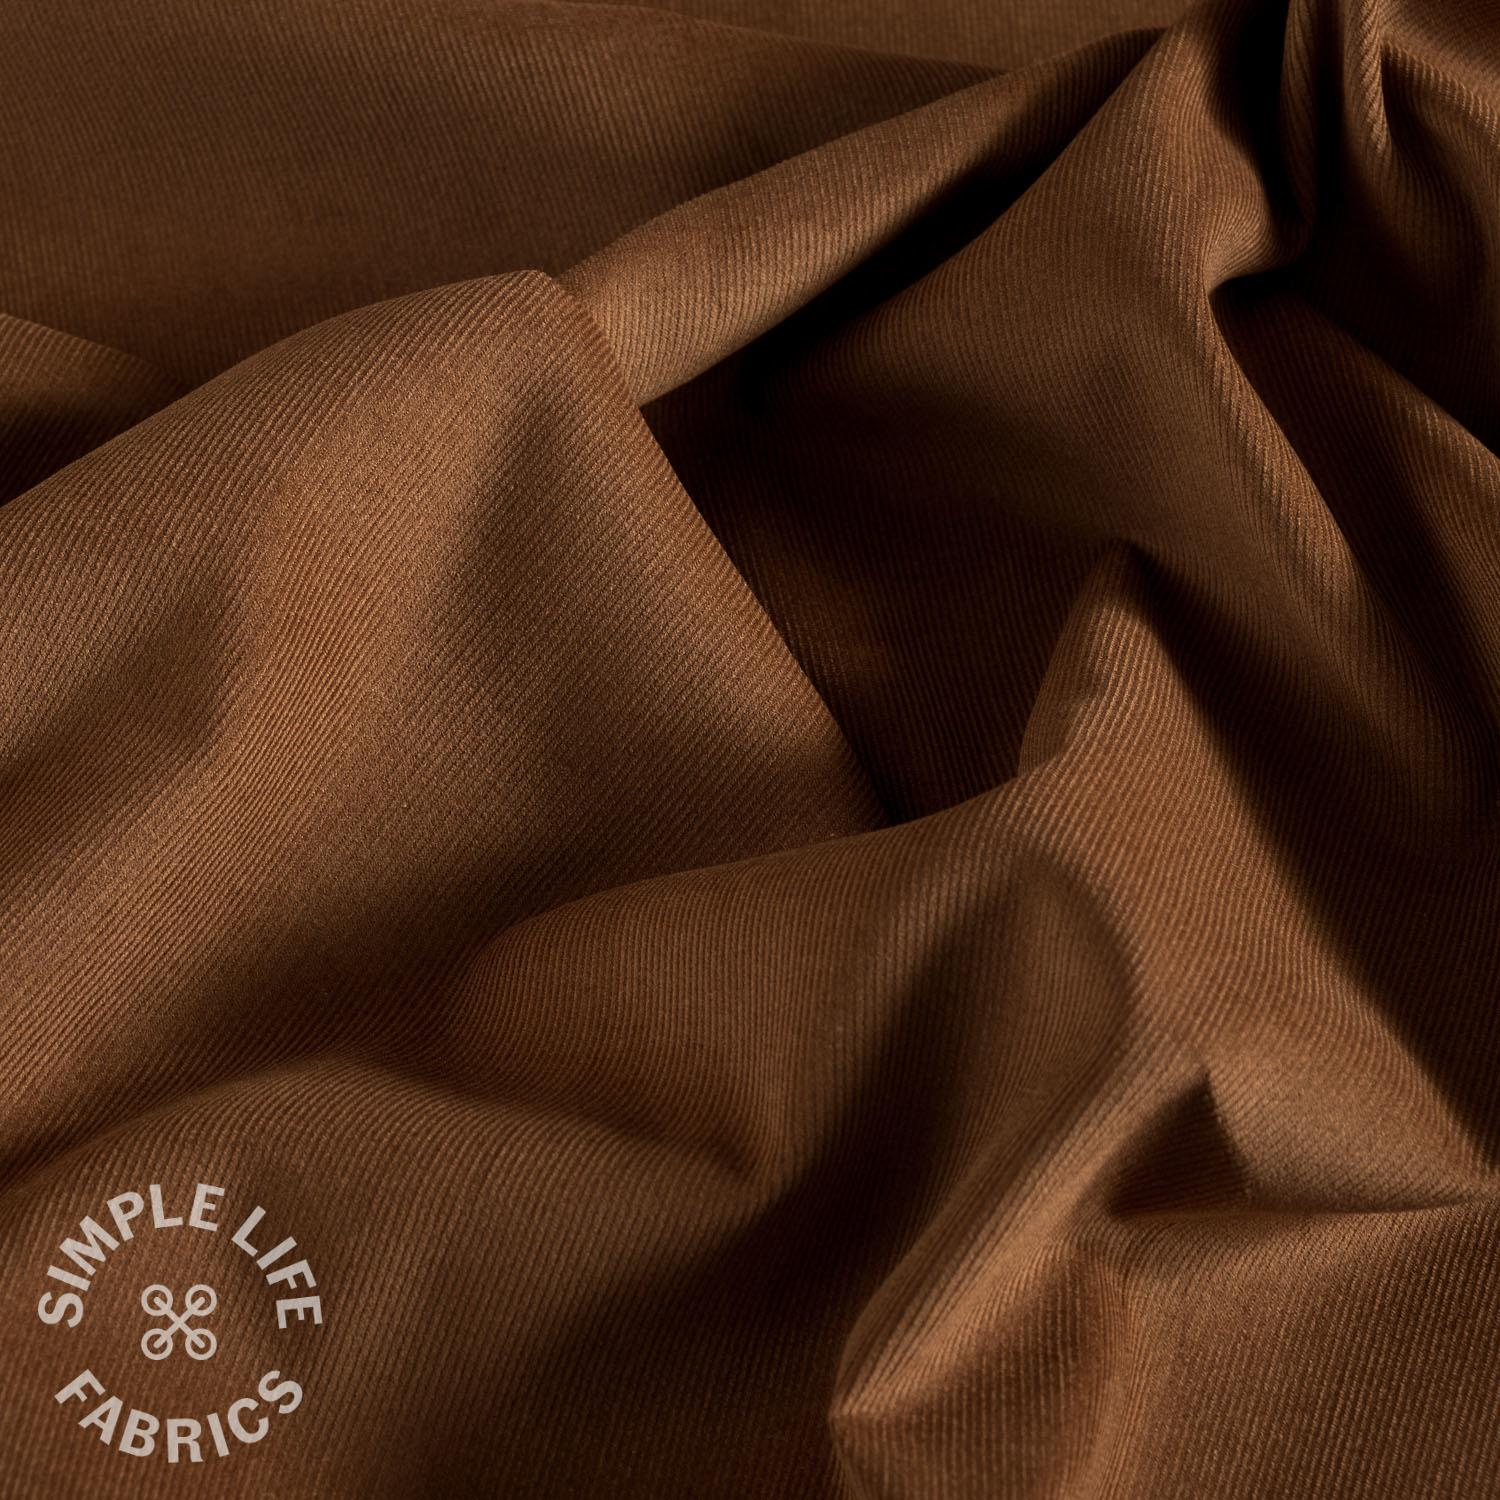 Brown ochre babycord corduroy fabric